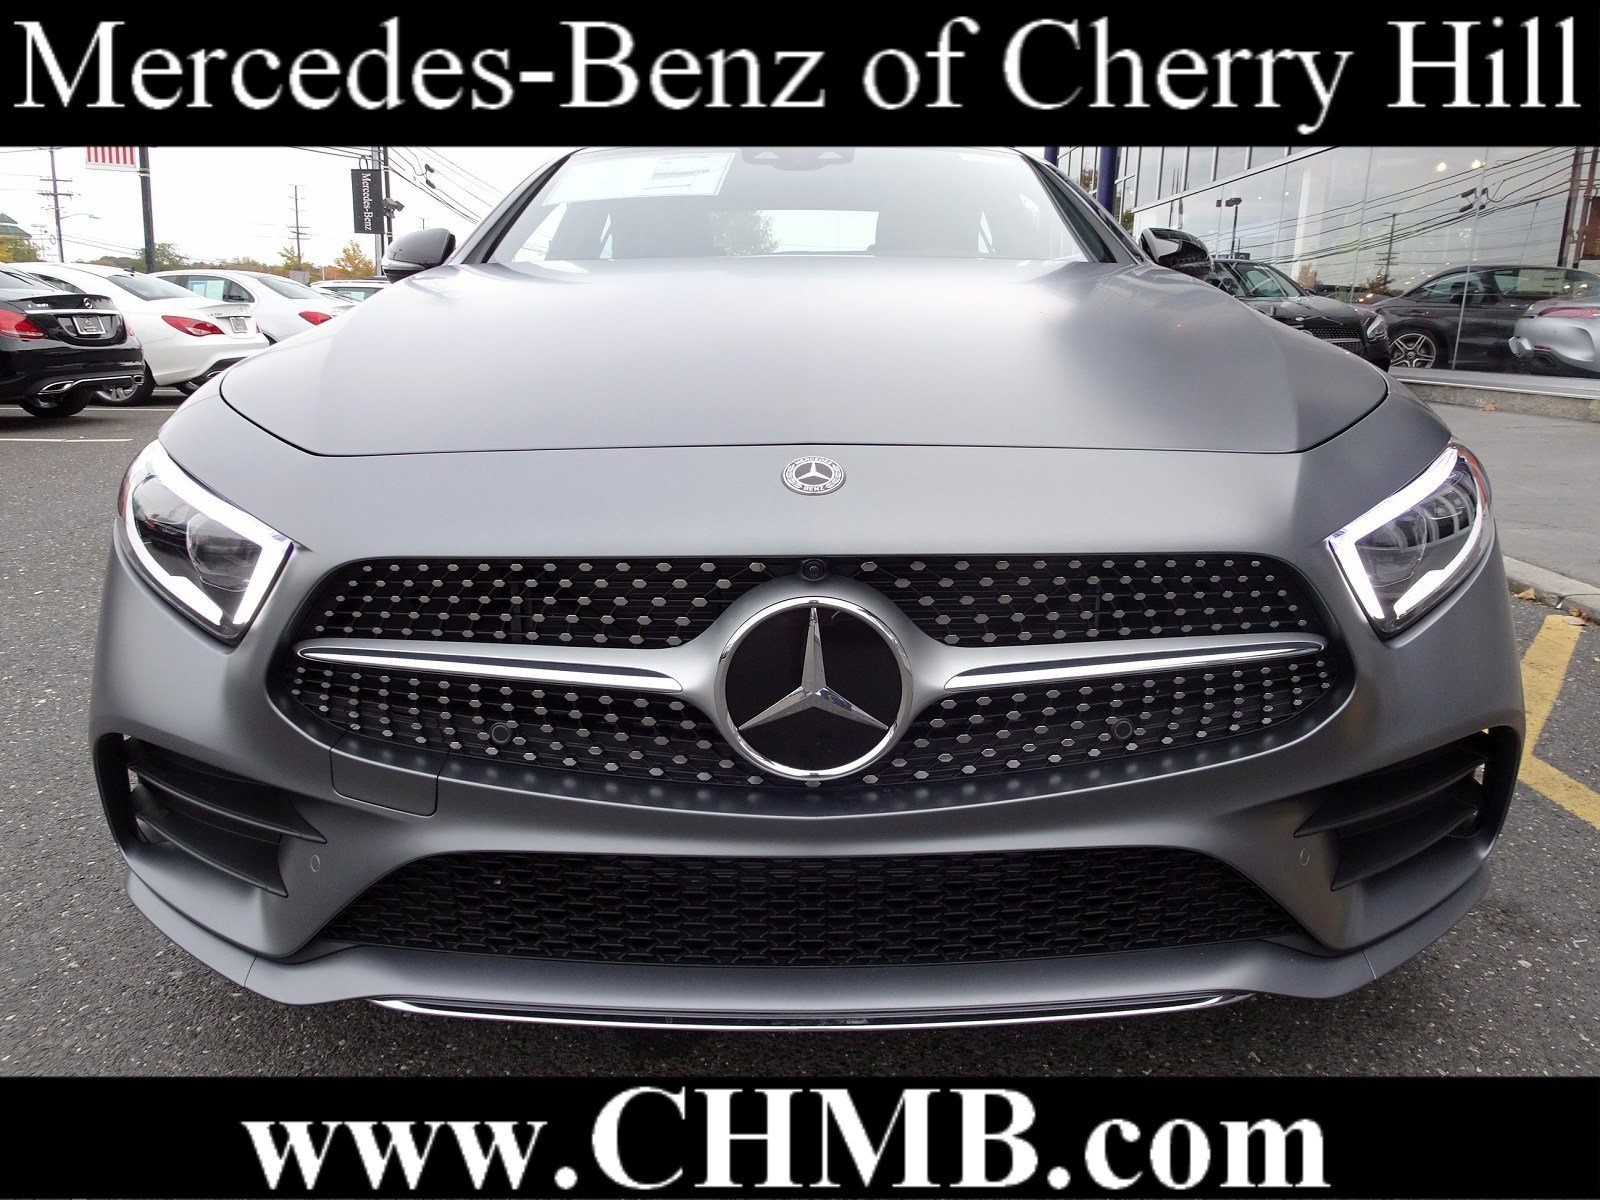 New 2019 Mercedes Benz CLS CLS 450 Coupe in Cherry Hill M2471